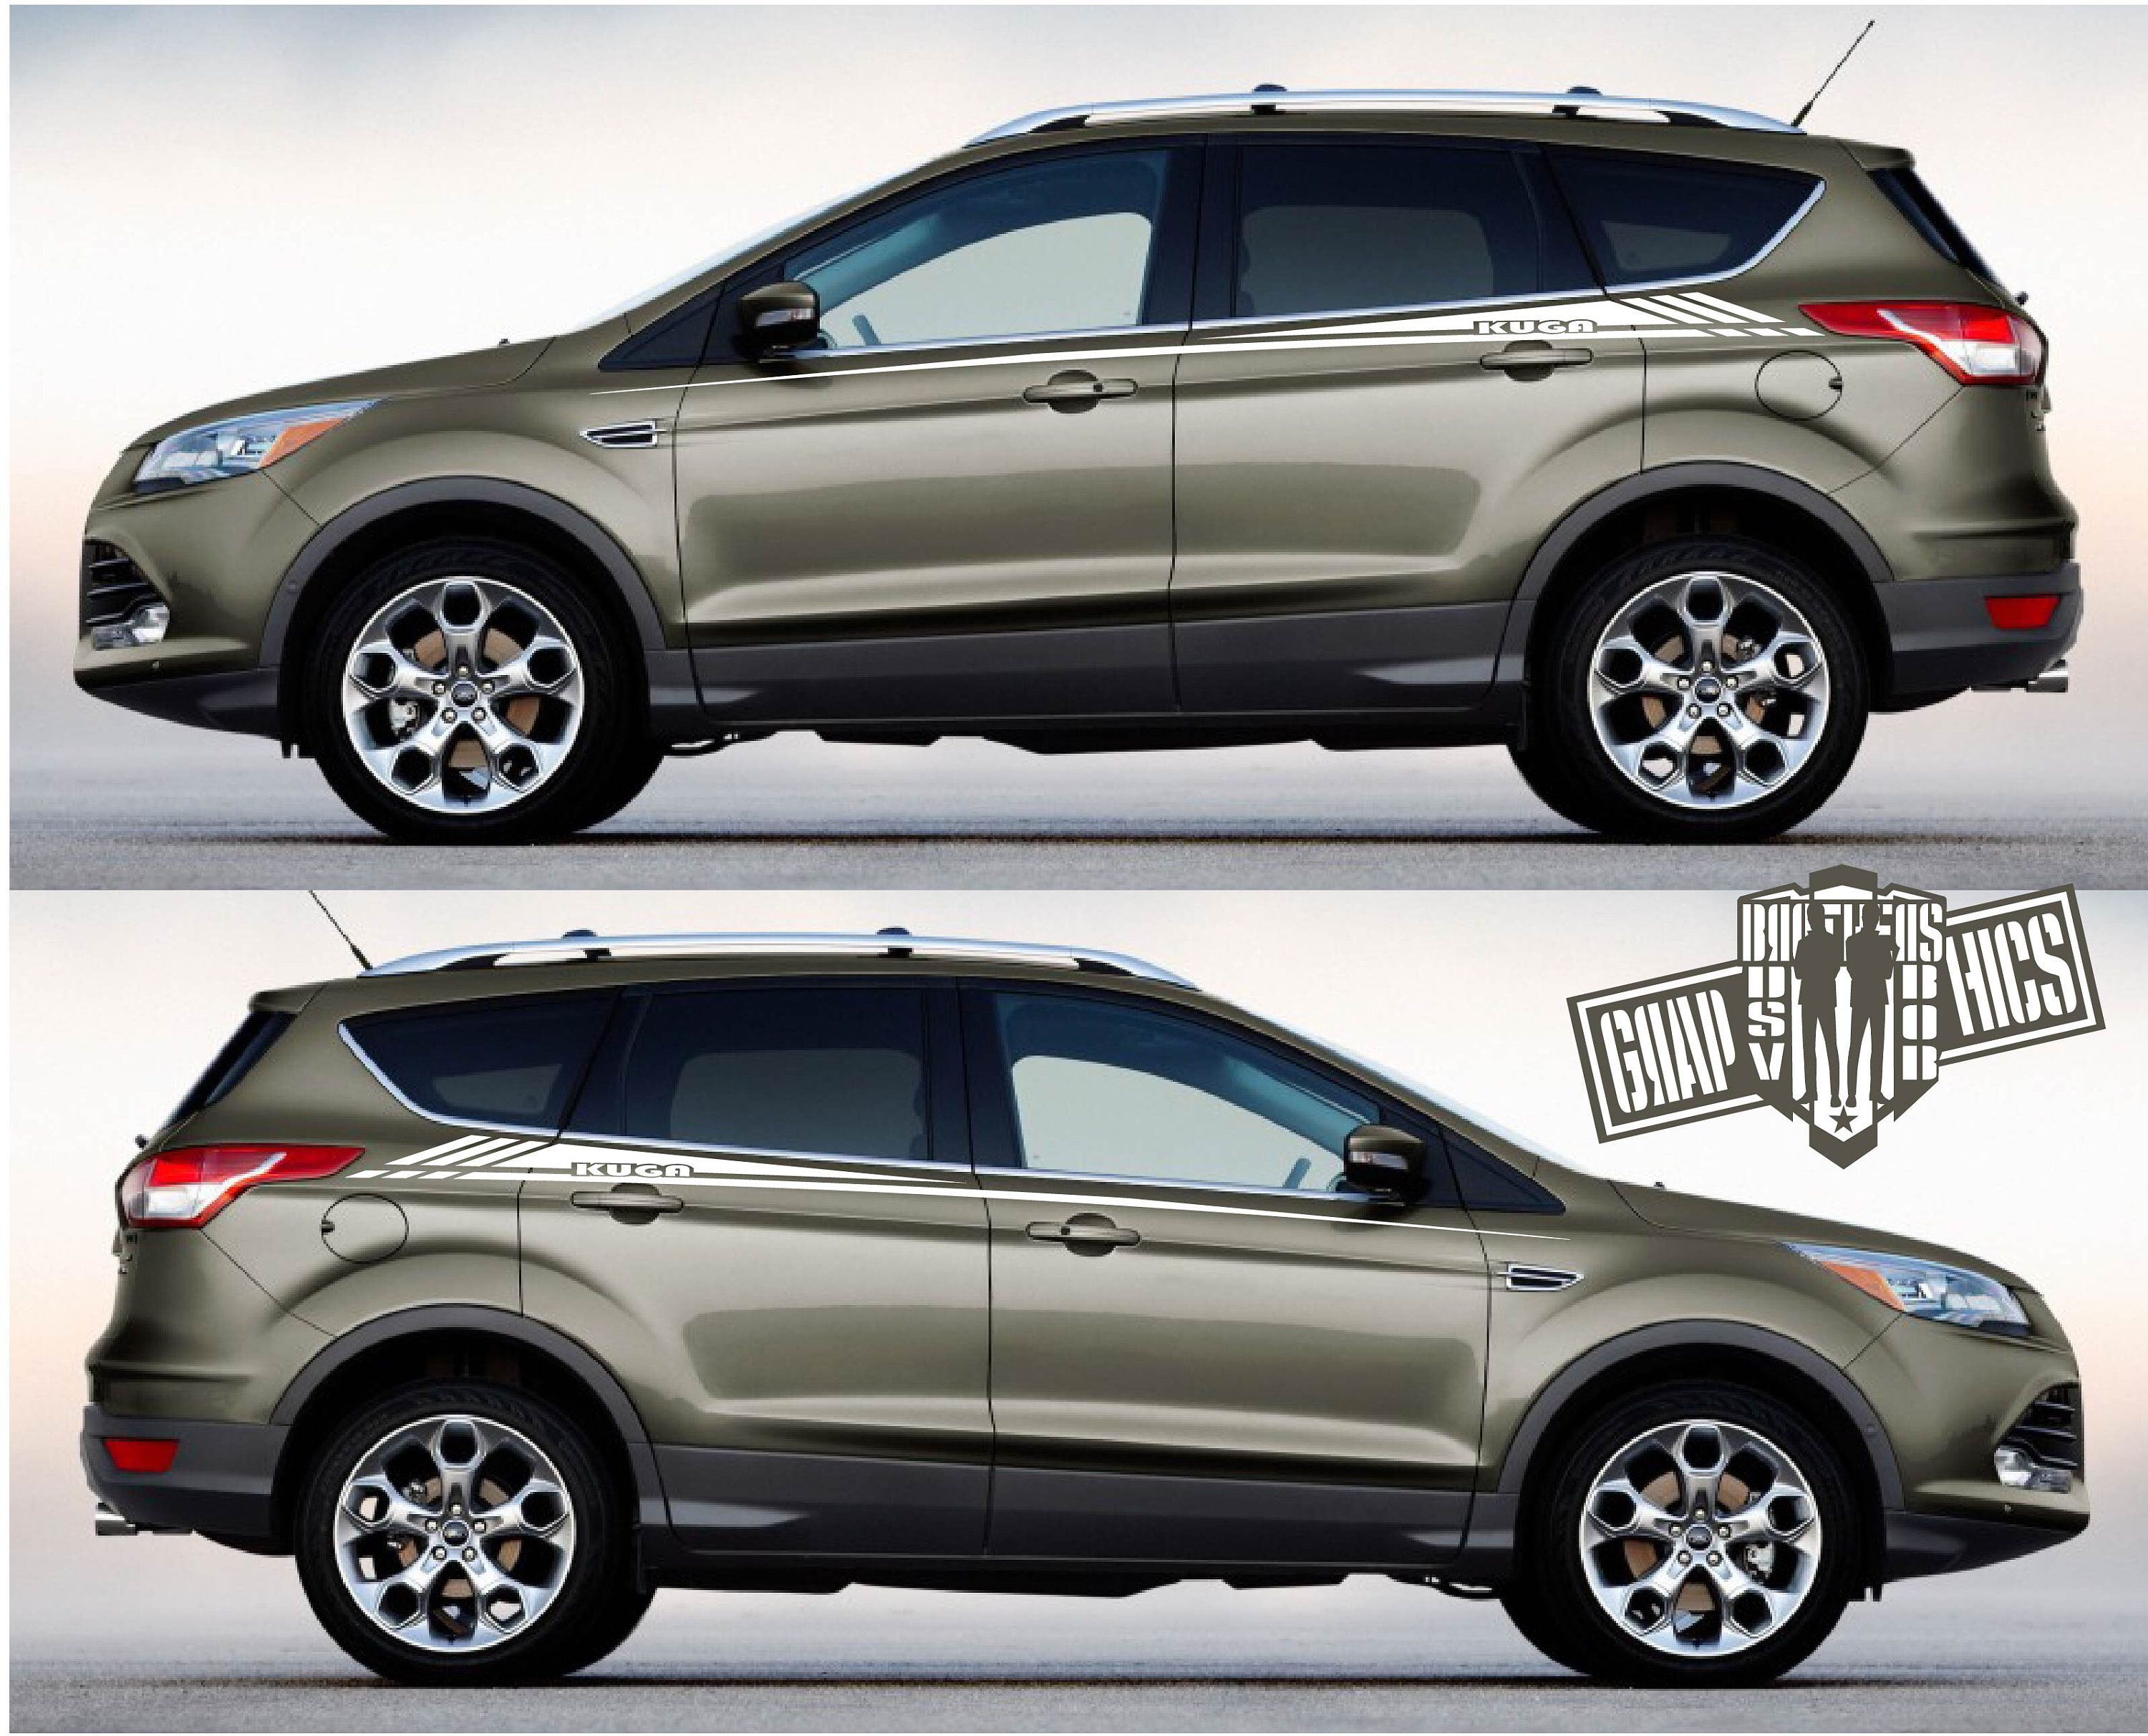 Ford Kuga Pair Of Sport Side Stripes Decal Sticker Vinyl2 Etsy